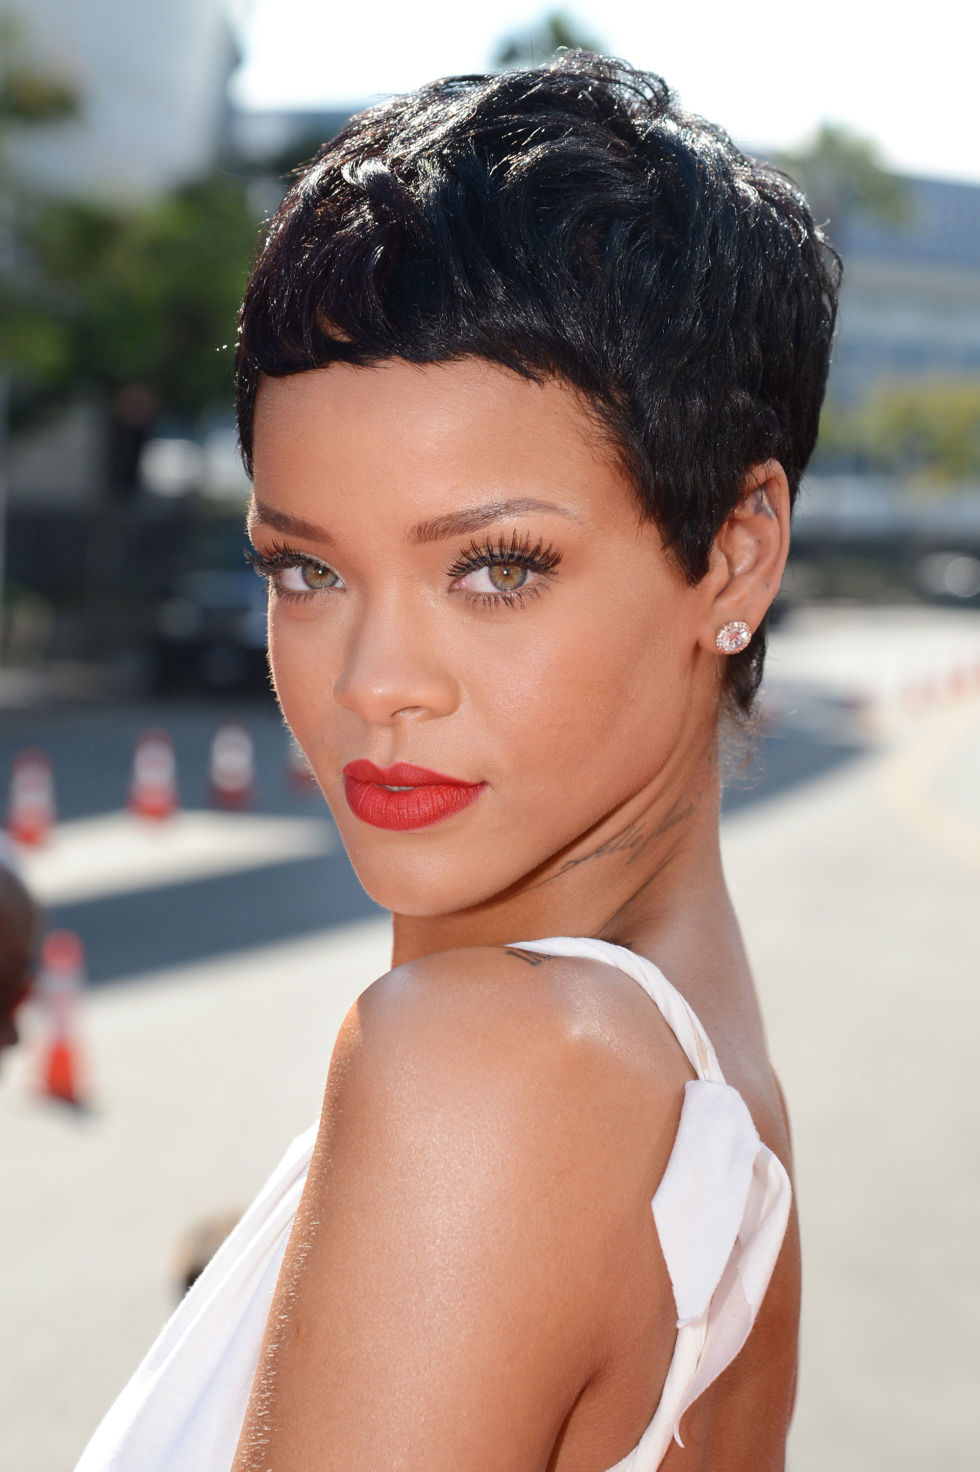 Pictures of mens hairstyles over 50 hnczcyw com - 7rihanna Pixie Cut